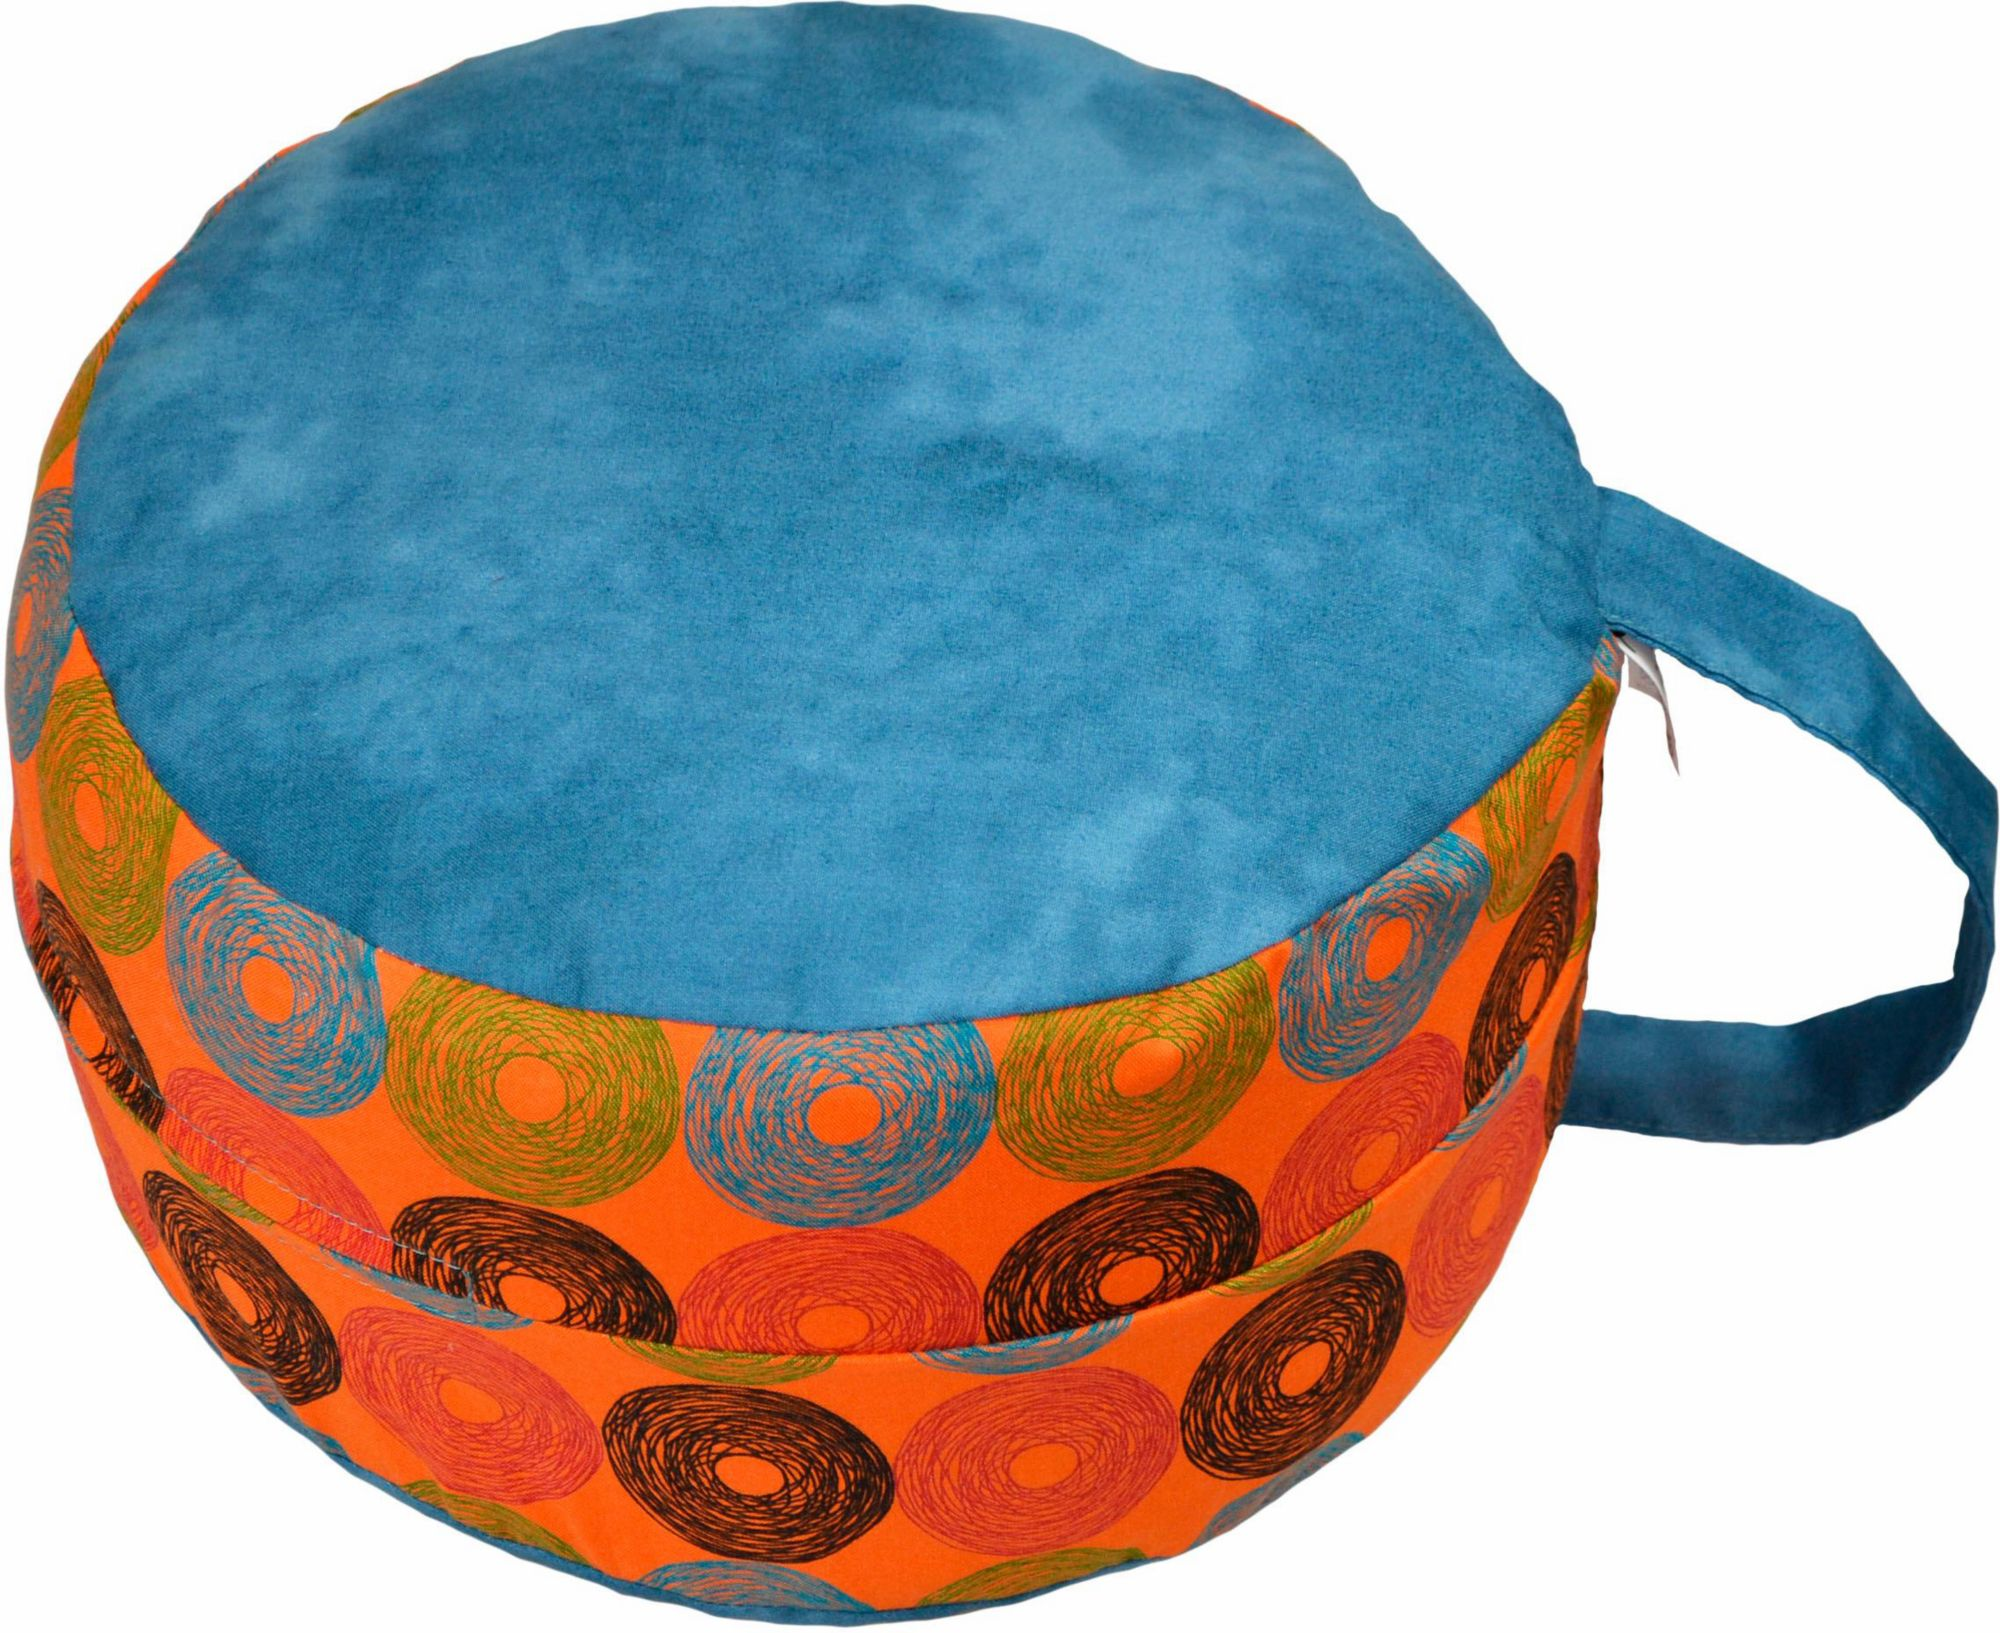 HERBALIND Mediations-/Yogakissen, »6520 blau/Retrokreise orange«, Herbalind